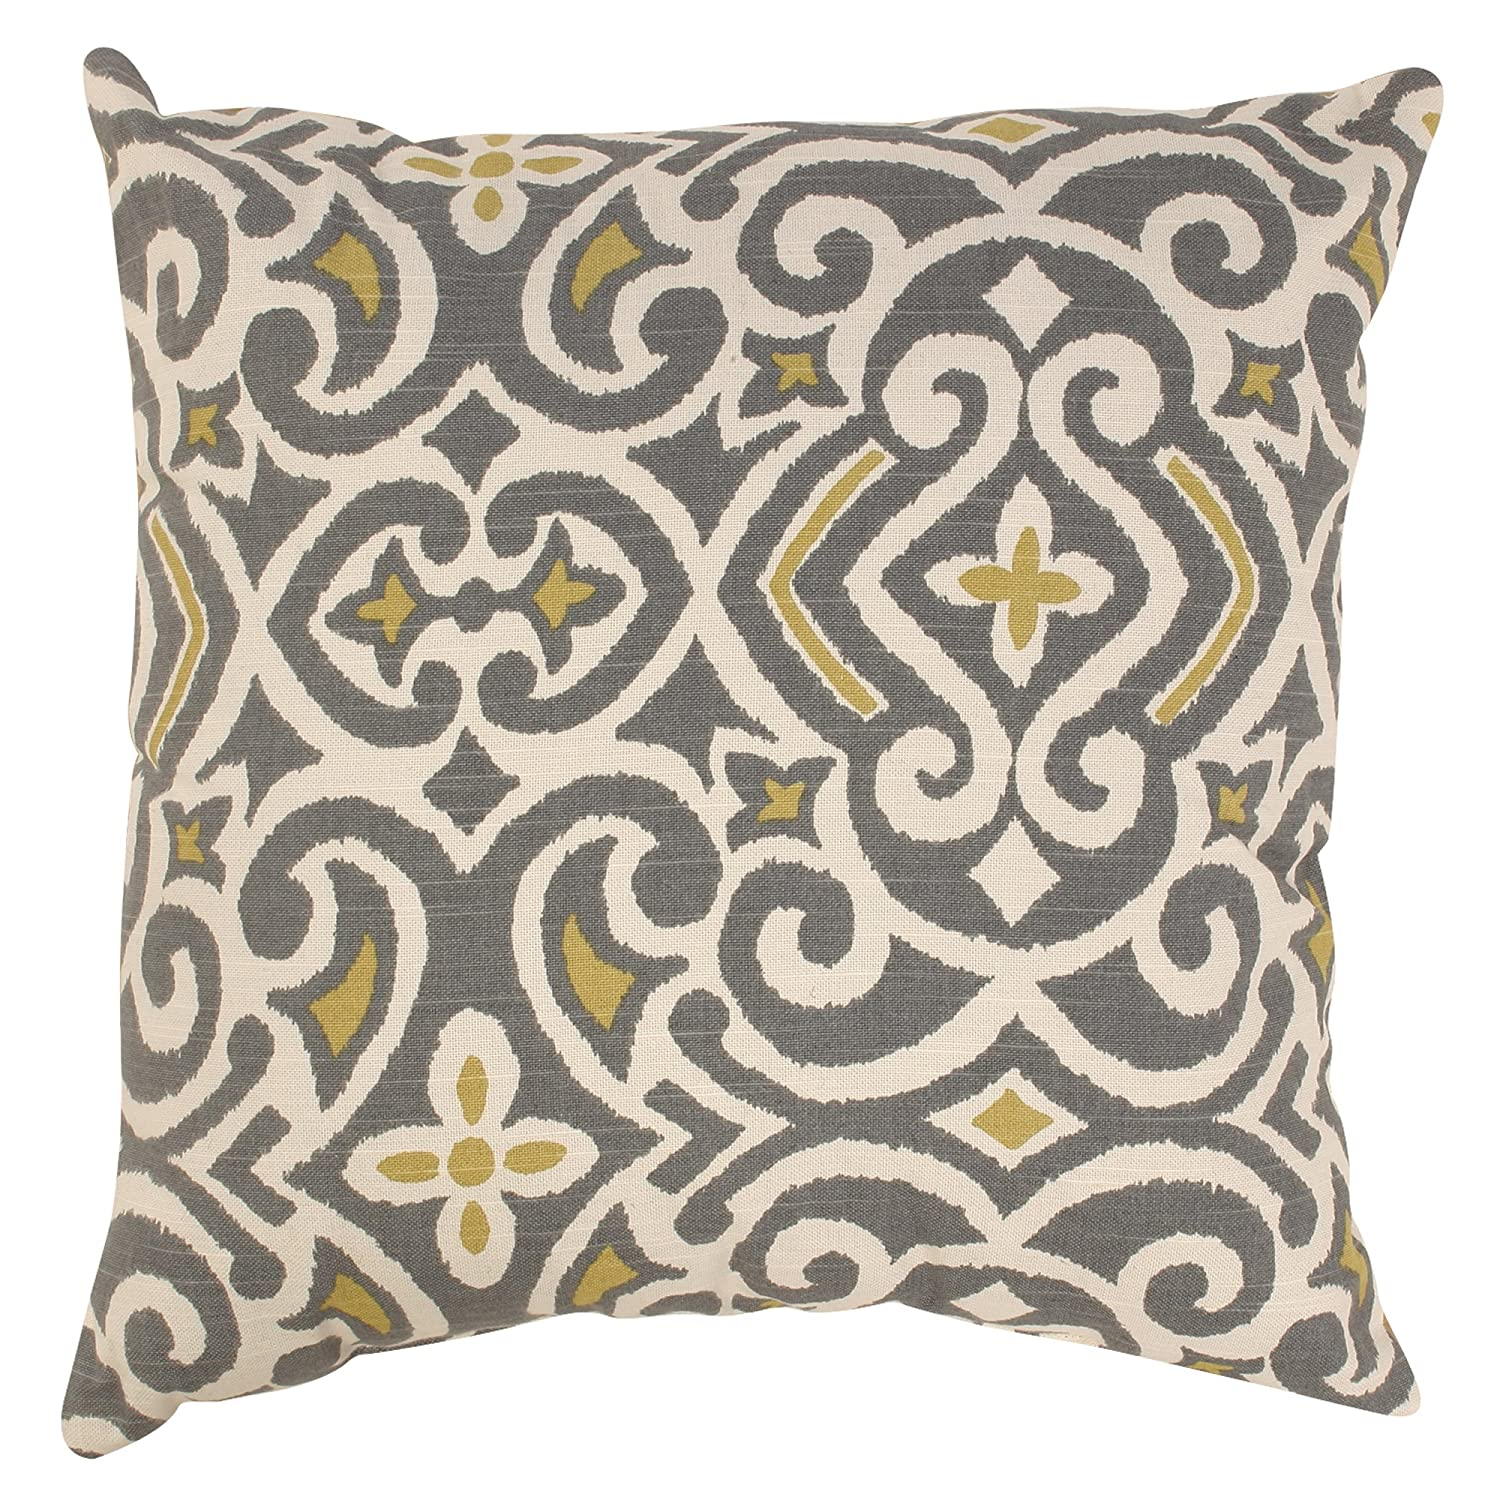 ArtVerse Lisa Yount 14 x 14 Faux Suede Double Sided Print with Concealed Zipper /& Insert Skull Pillow